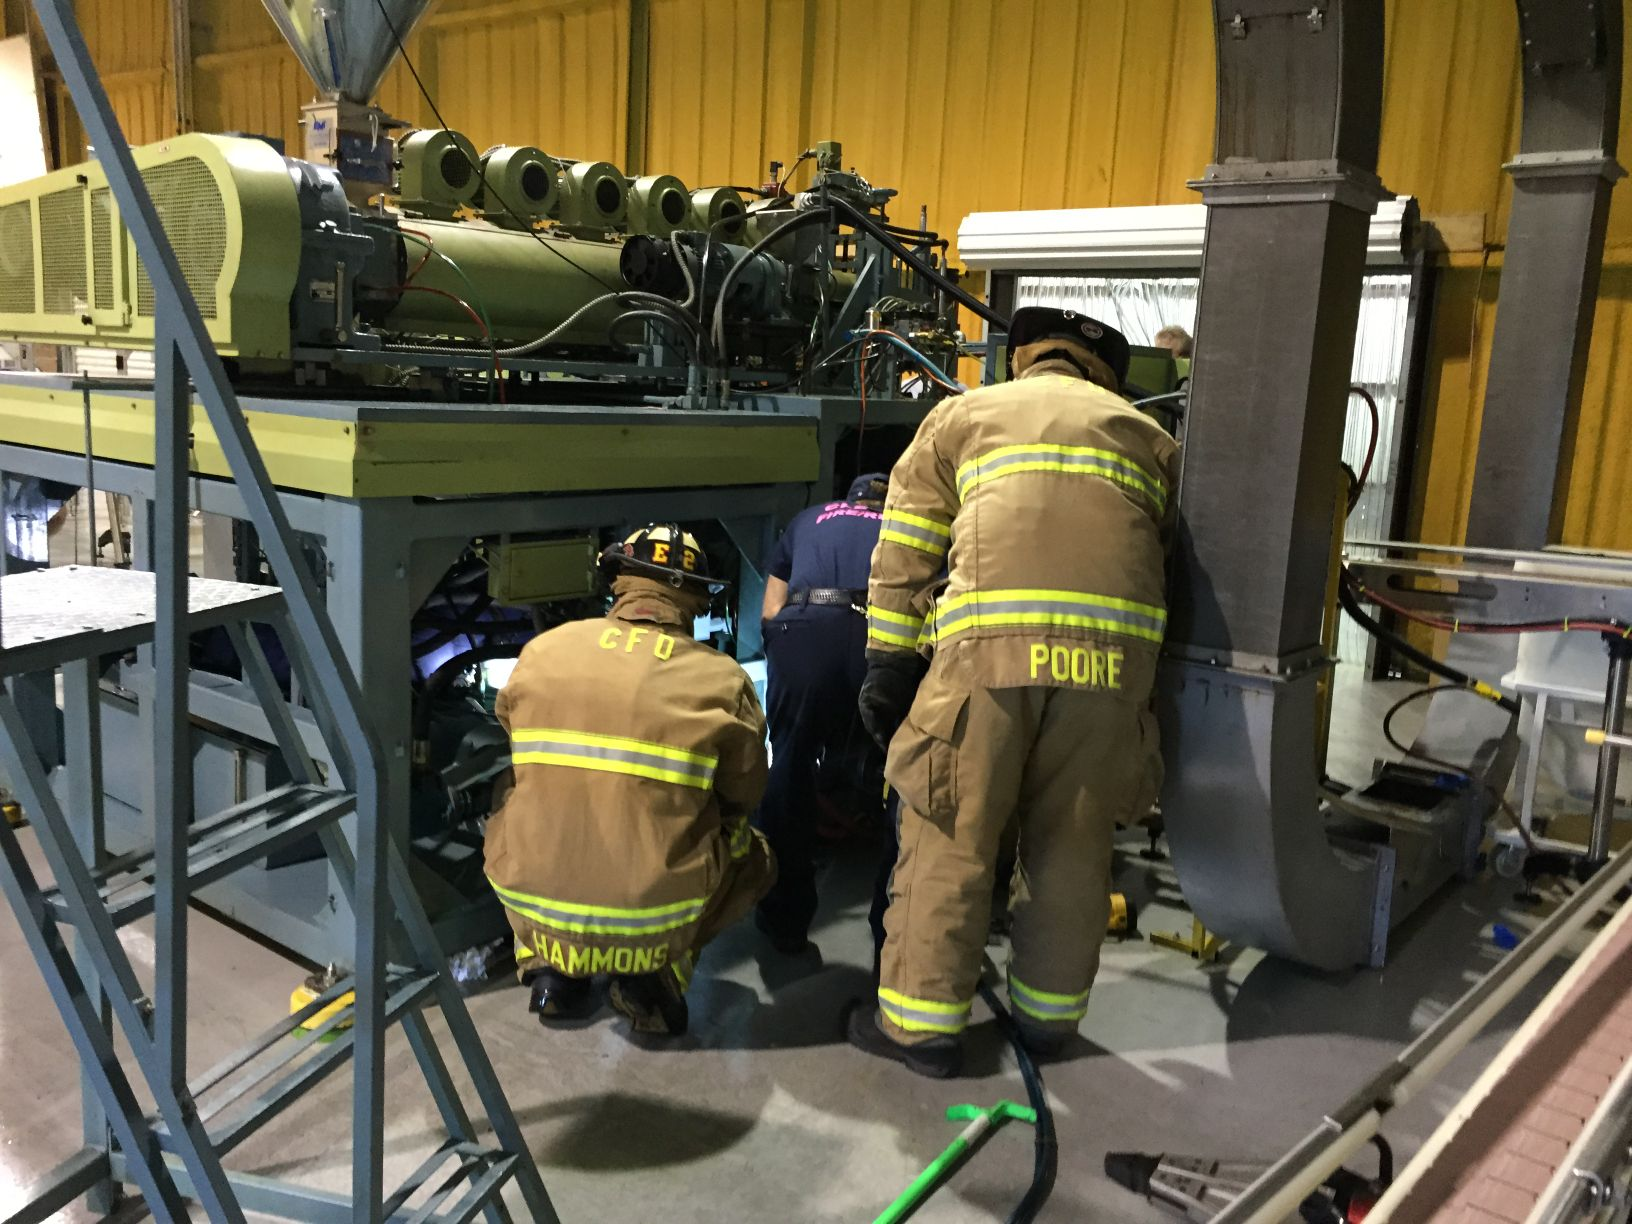 Hand extrication CFD extricates man trapped inside